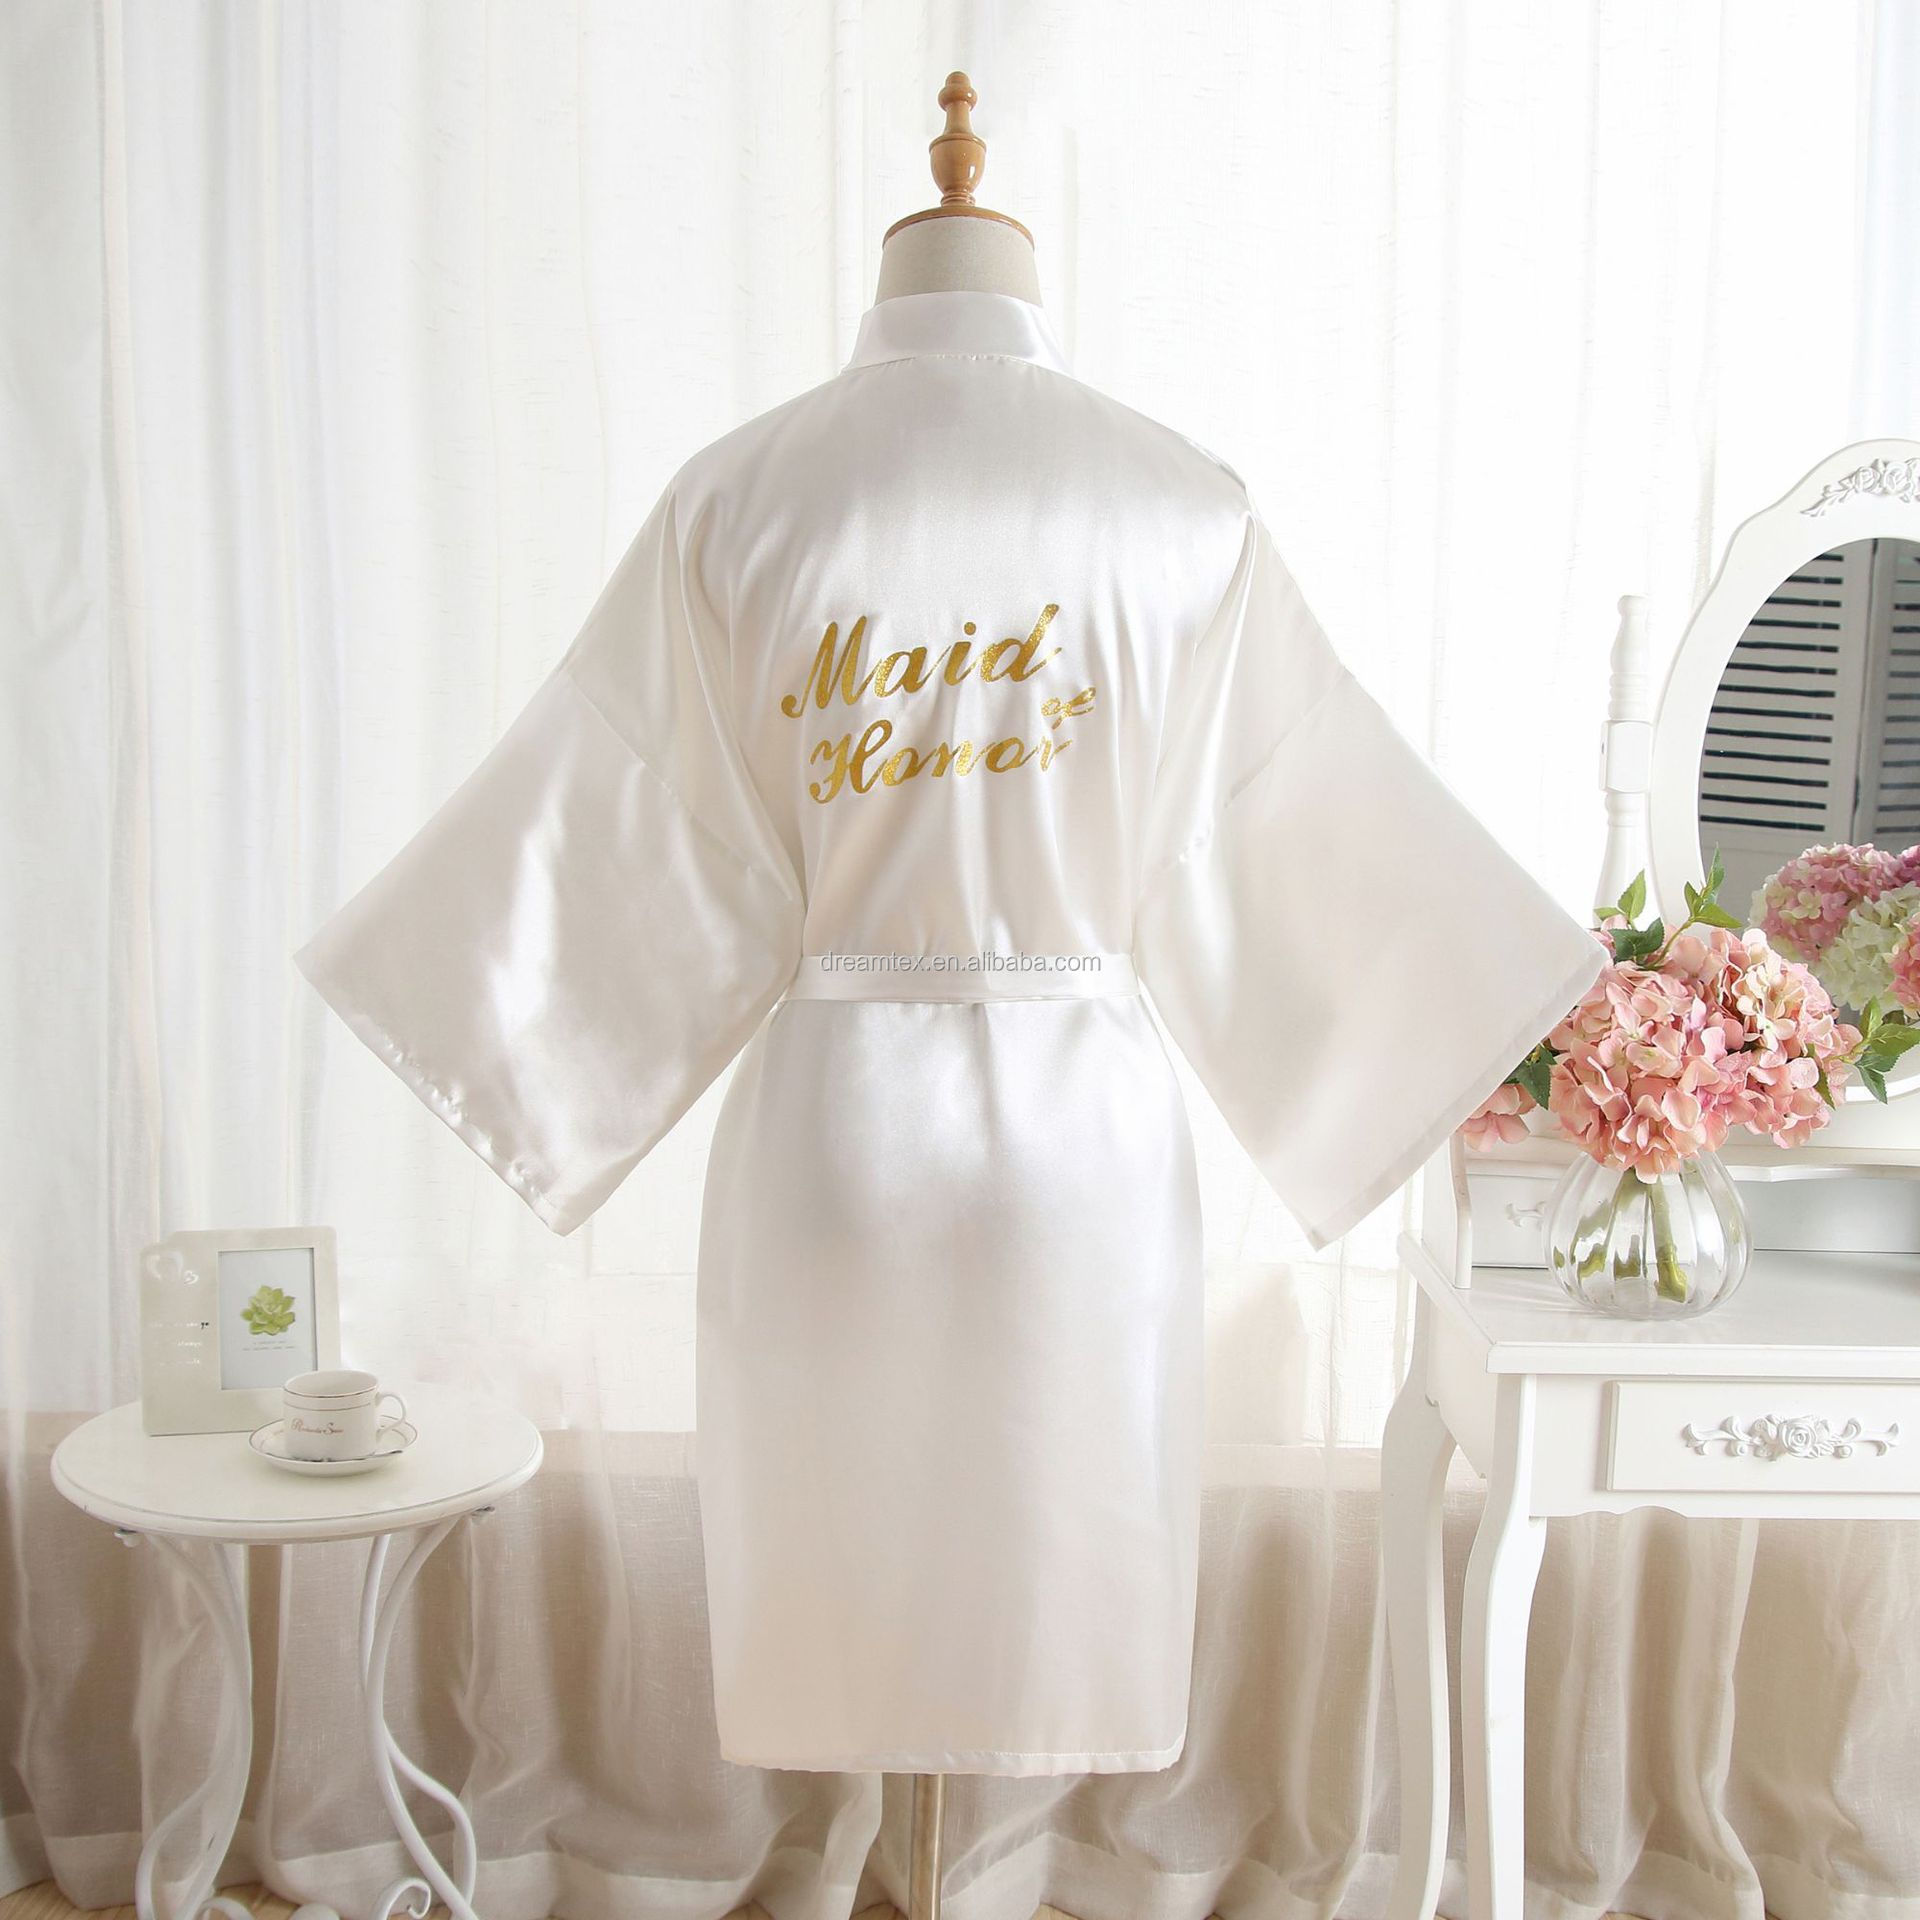 night gown Maid of honor Wholesale  artificial SILK  bride   maids morning wear robes wedding  group make up  robes